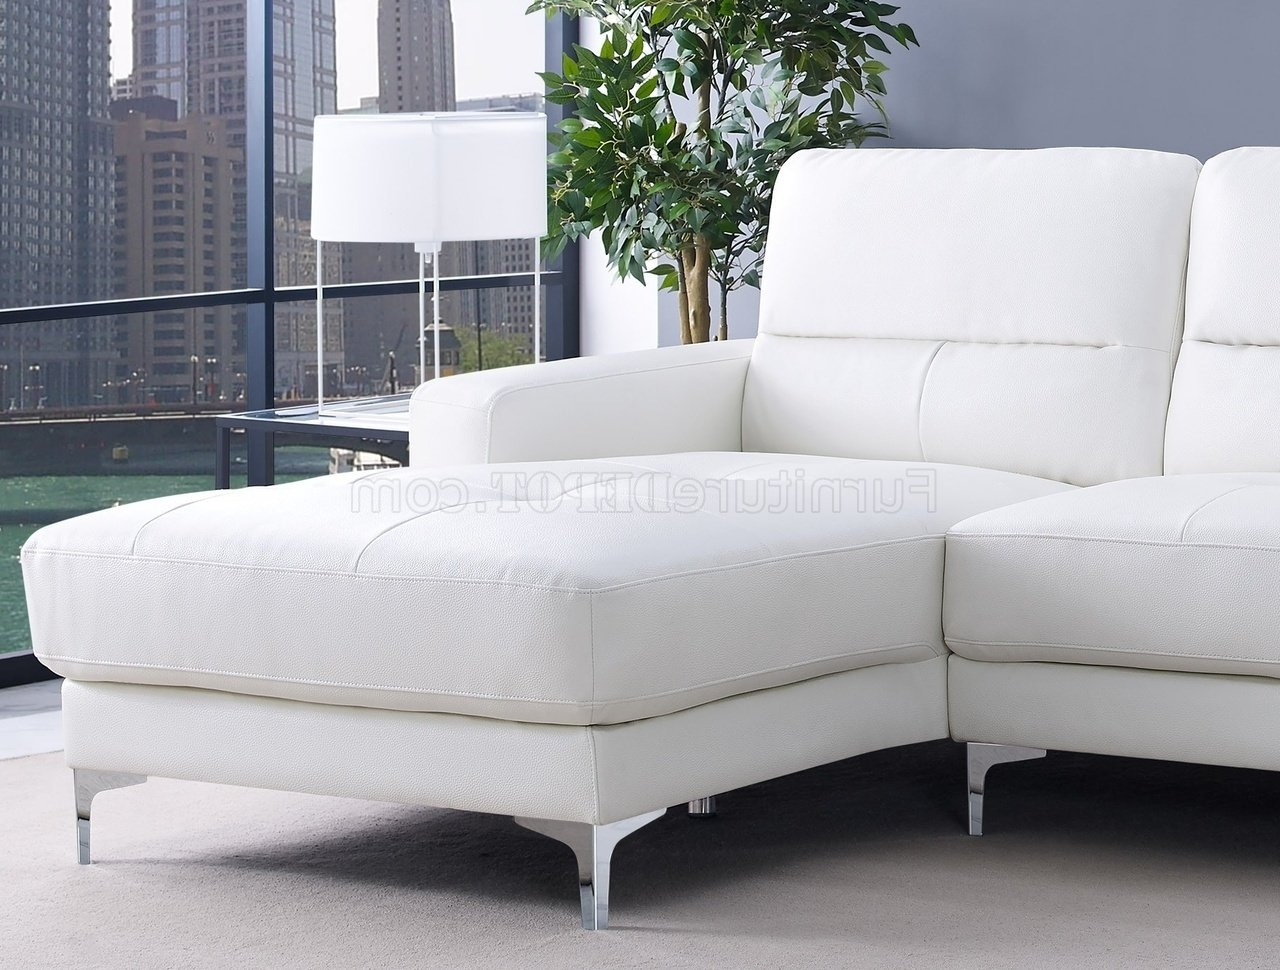 Widely Used Memphis Sectional Sofas Within Sectional Sofa In White Bonded Leatherwhiteline (View 14 of 15)